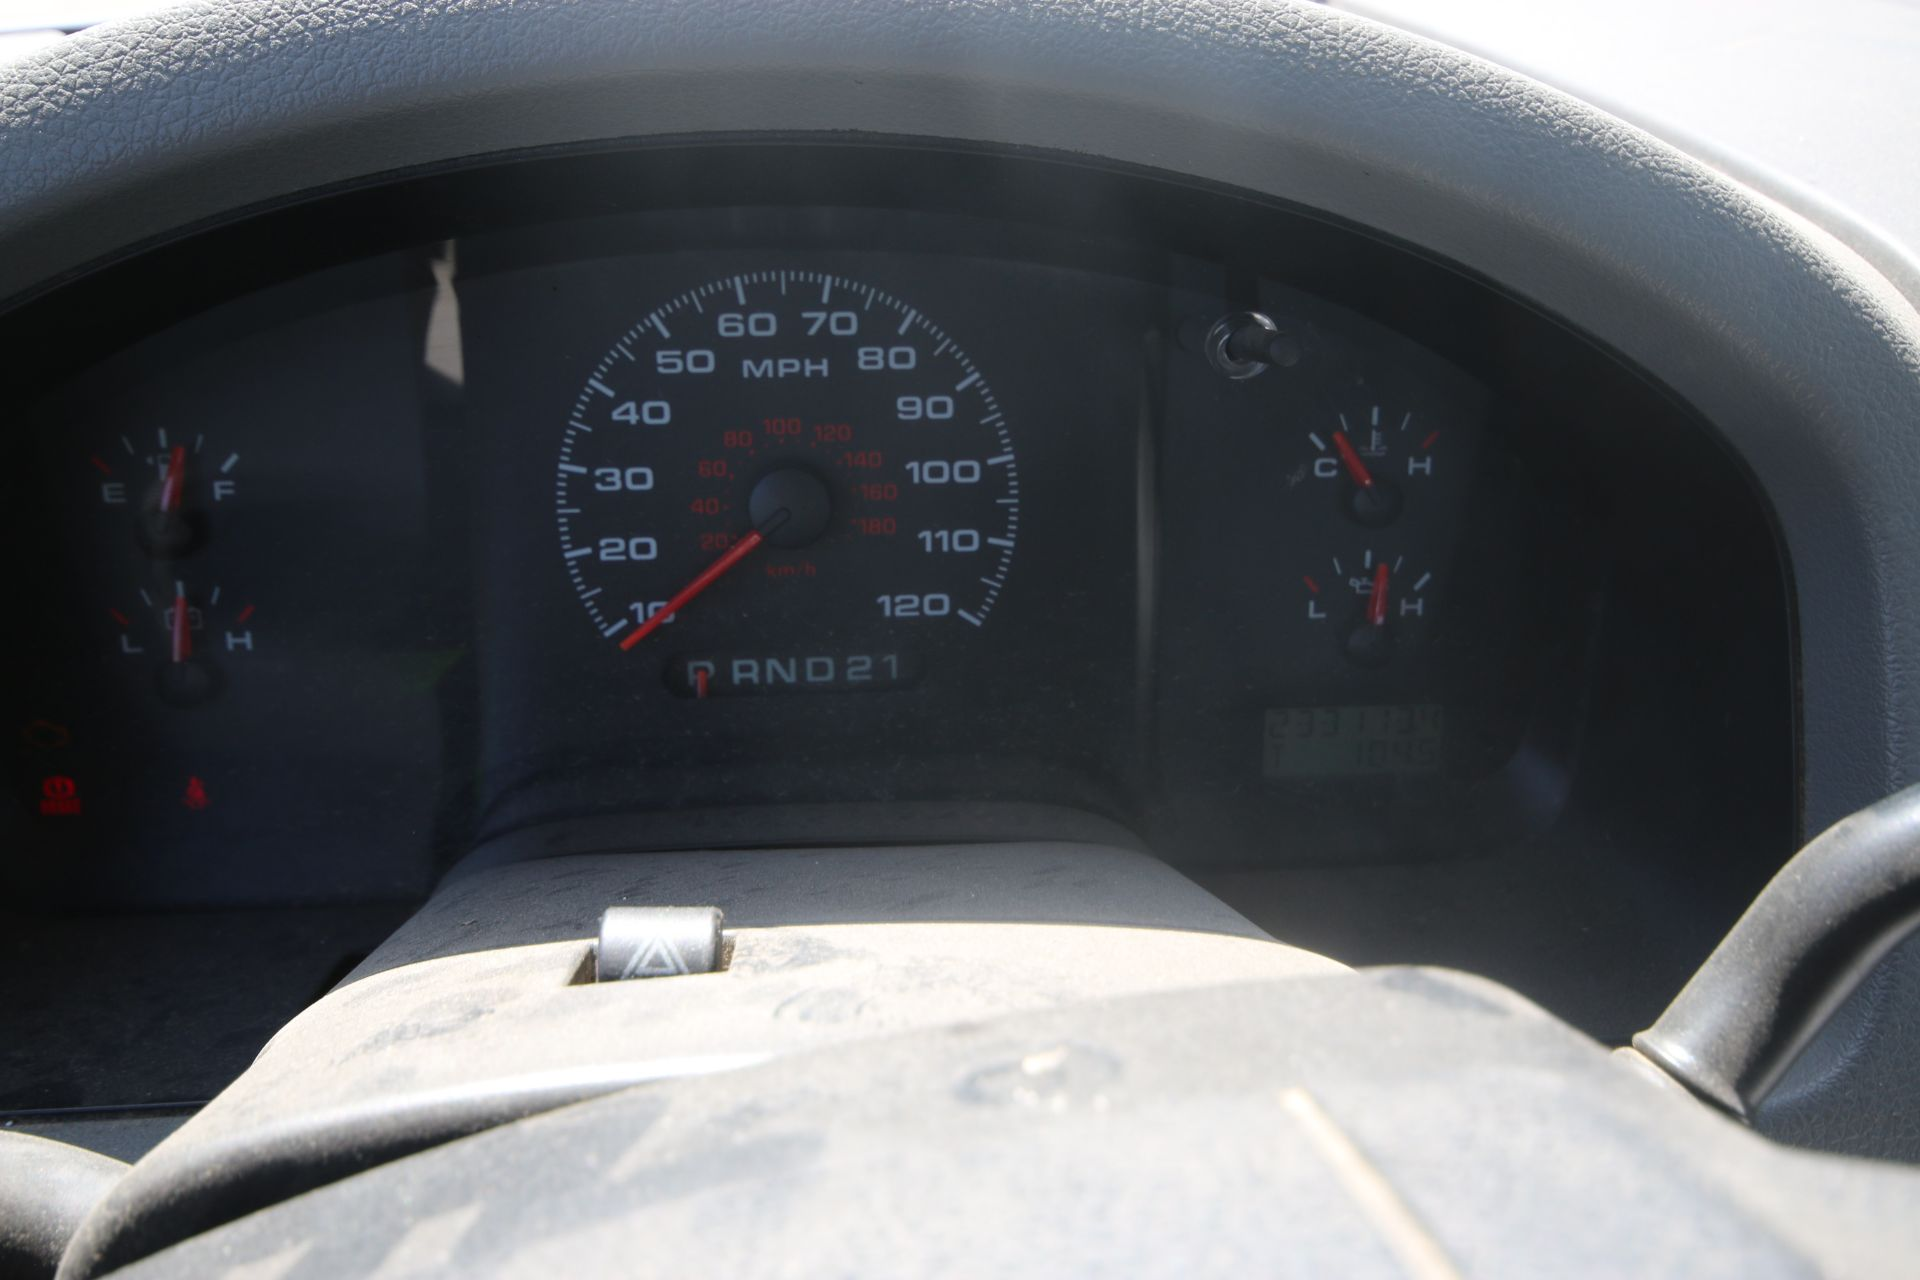 2006 Ford F150 S/C Pick Up Truck, VIN #: 1FTRX12W46FA38458, with 233,106 Miles, Started Up as of - Image 4 of 21